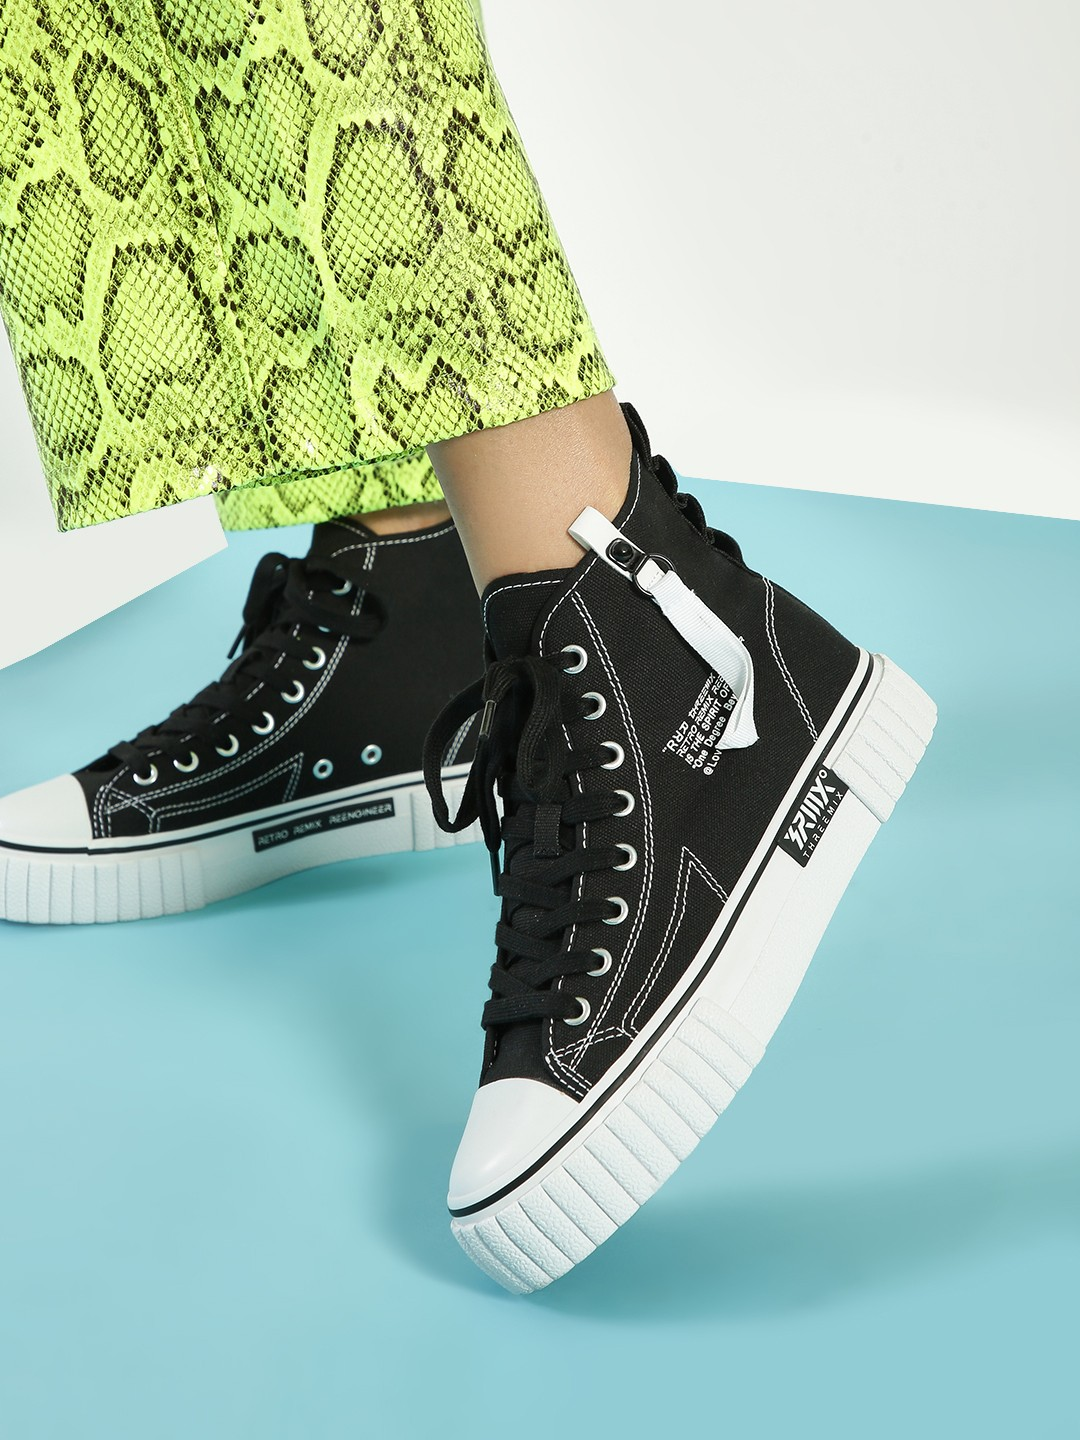 361 Degree Black Vulcanized Hi-Top Sneakers 1